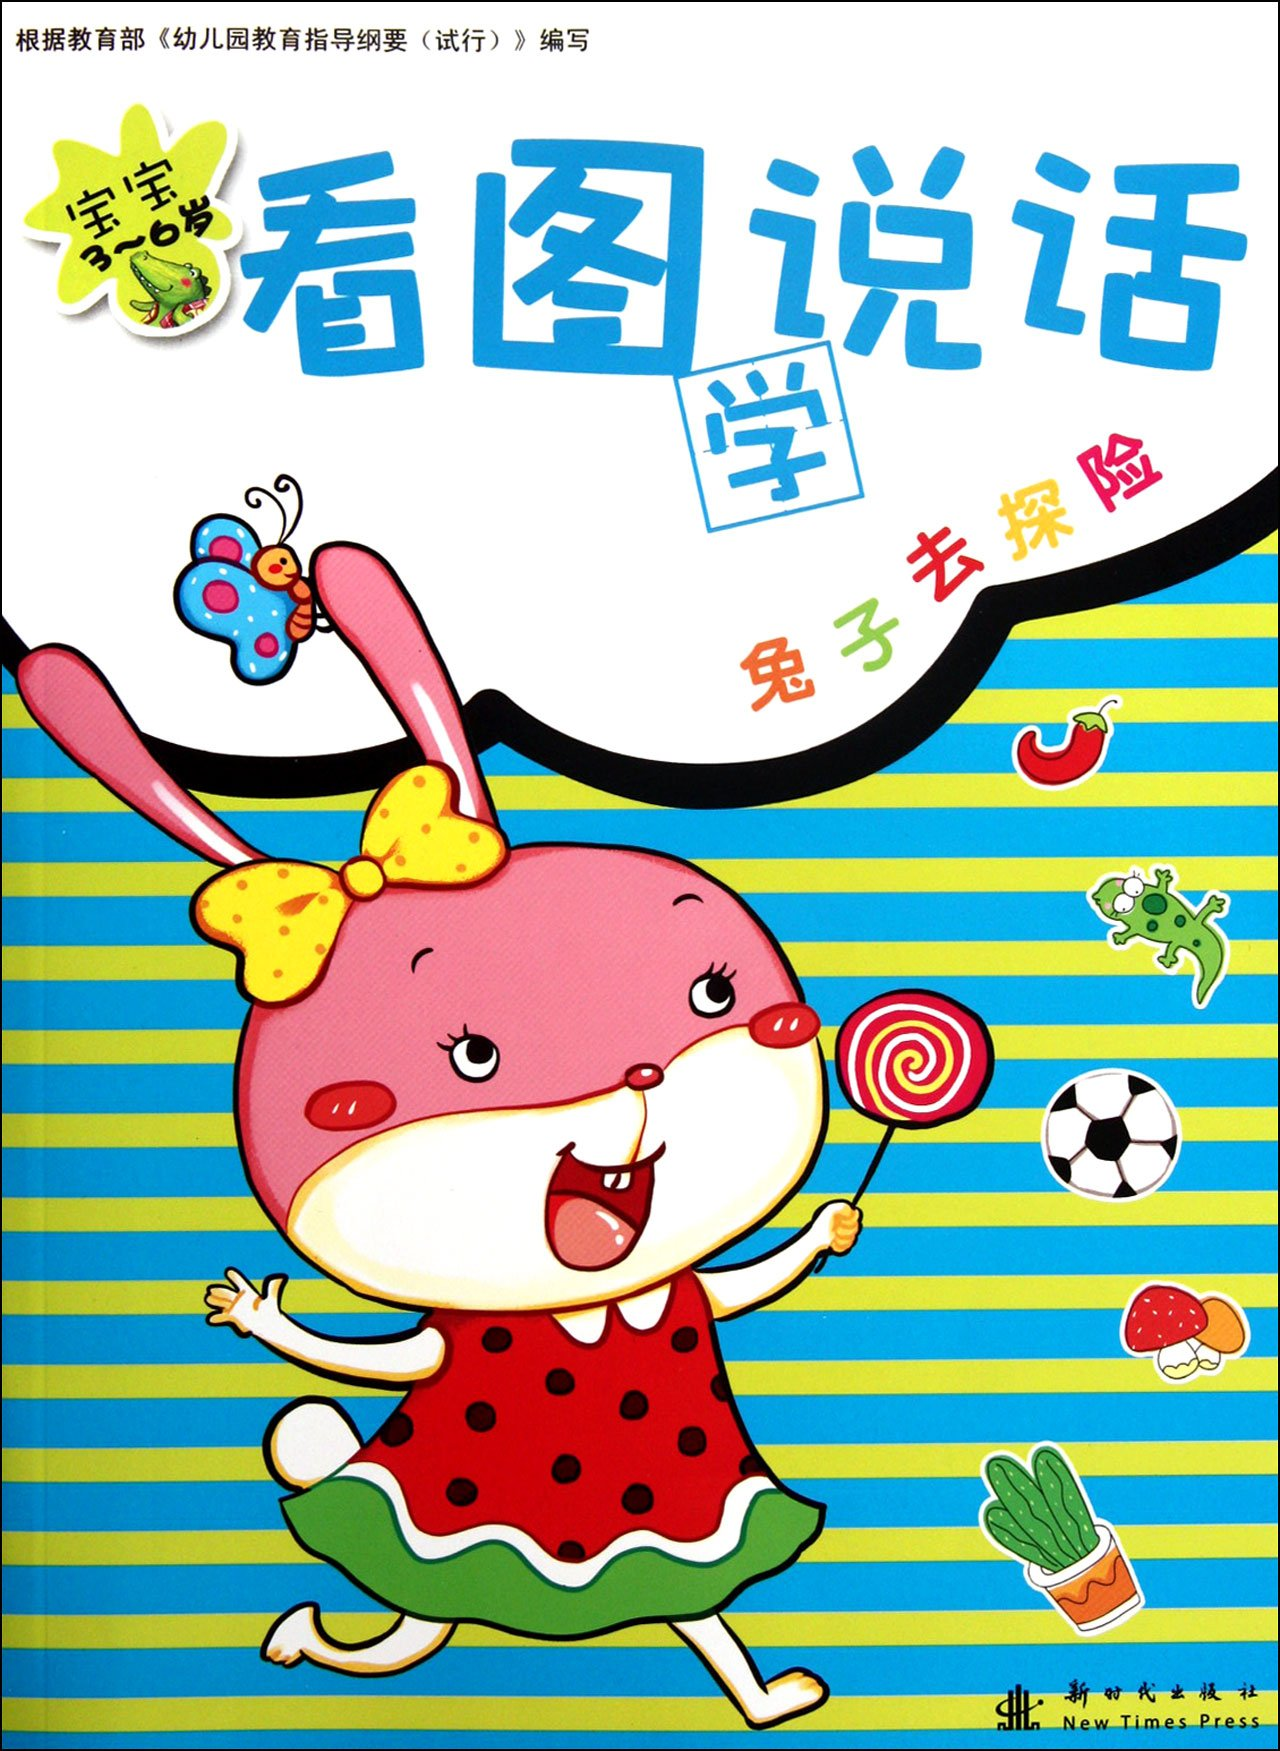 Adventures of Rabbits Learn to Talk by Pictures-2 (for children aged 3-6) (Chinese Edition) pdf epub